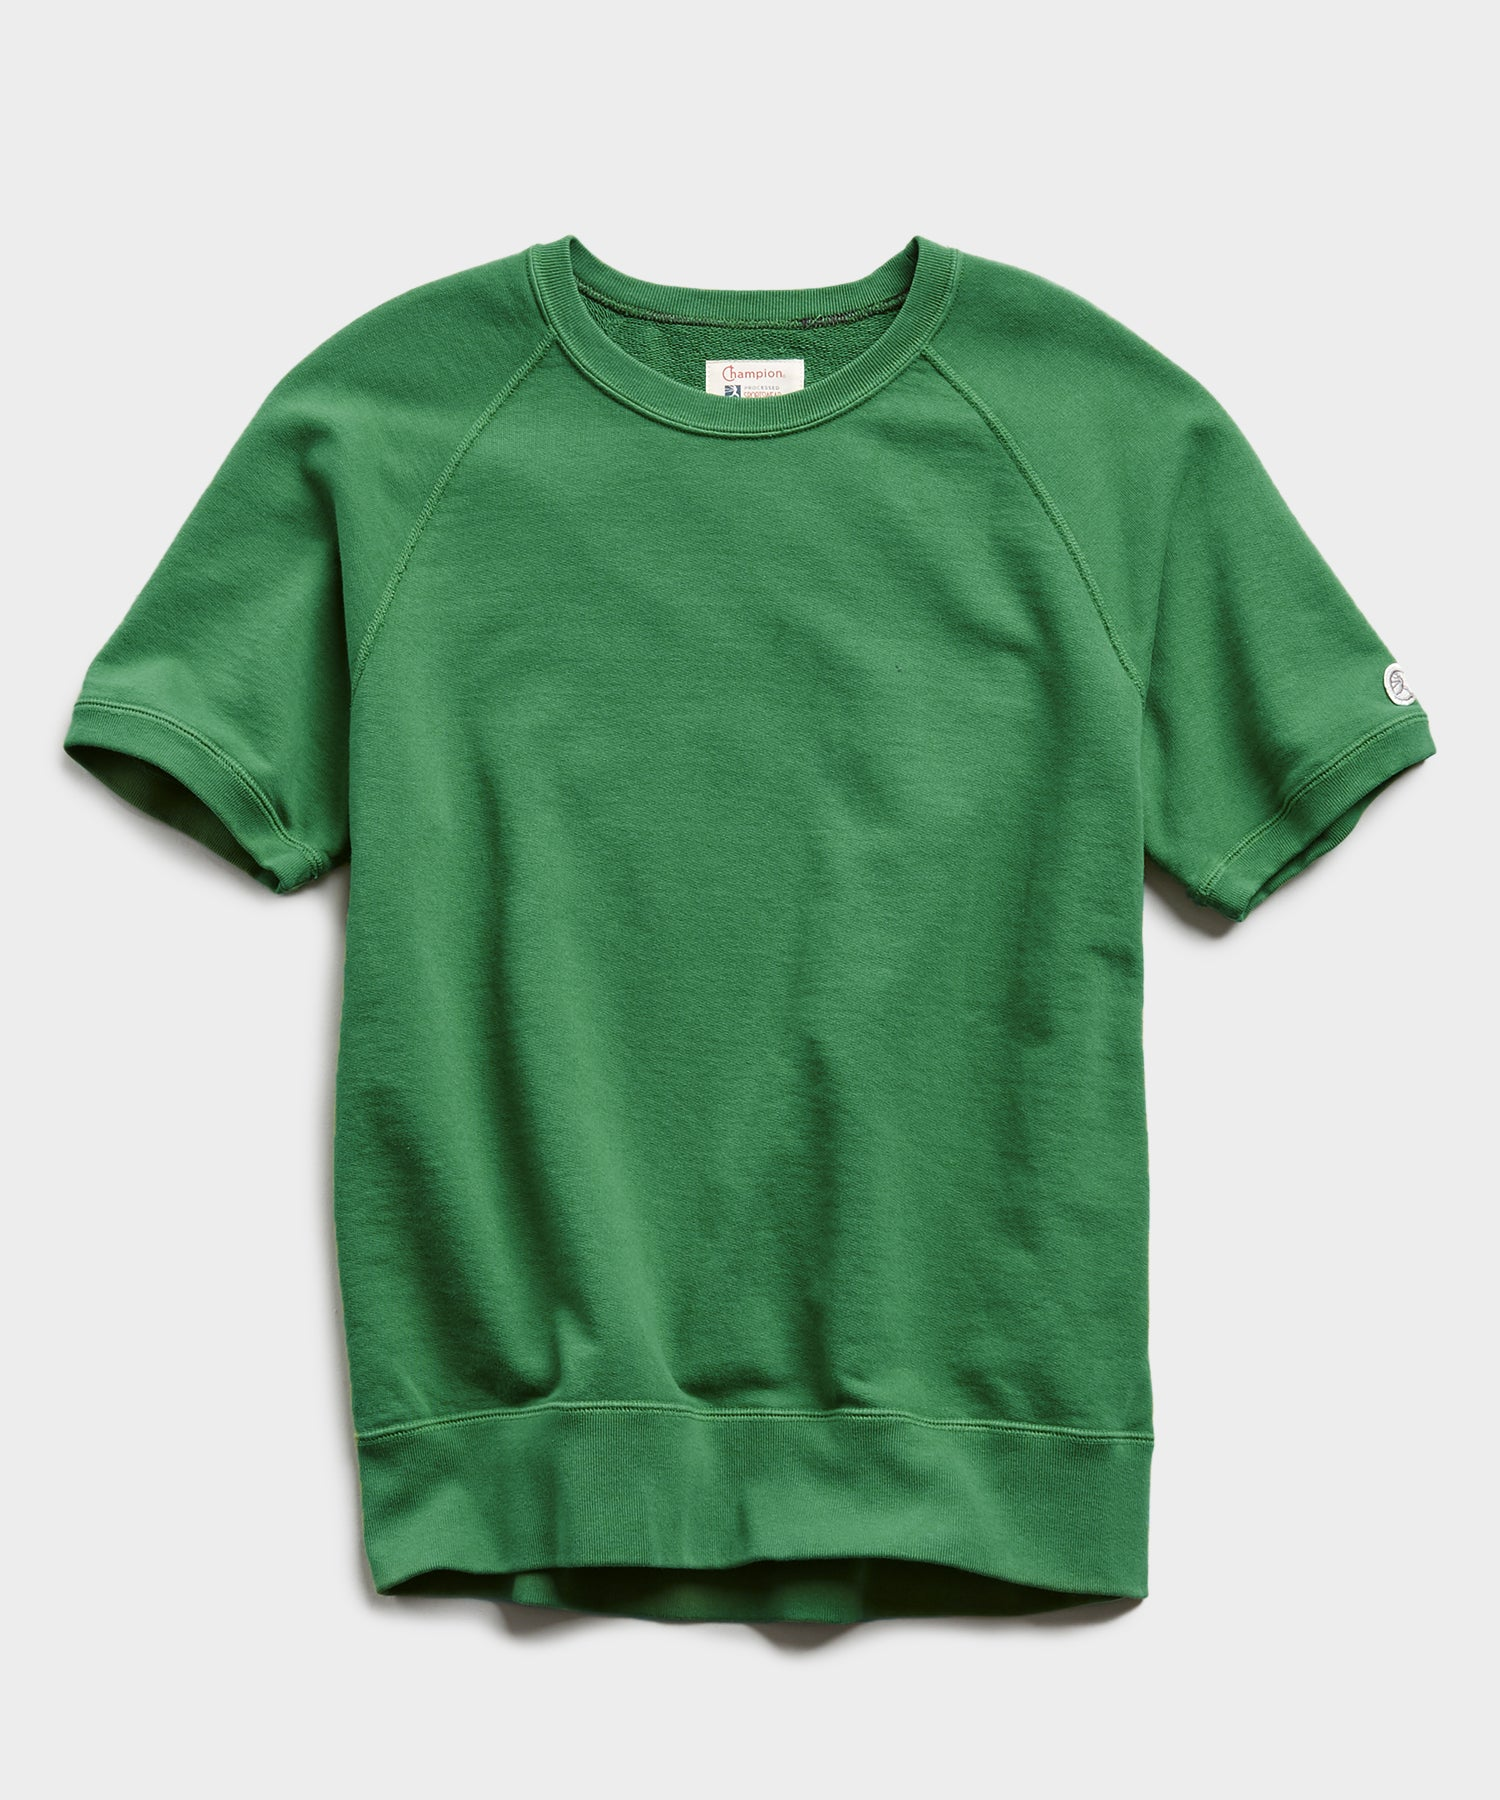 Lightweight Short Sleeve Sweatshirt in Cabana Green